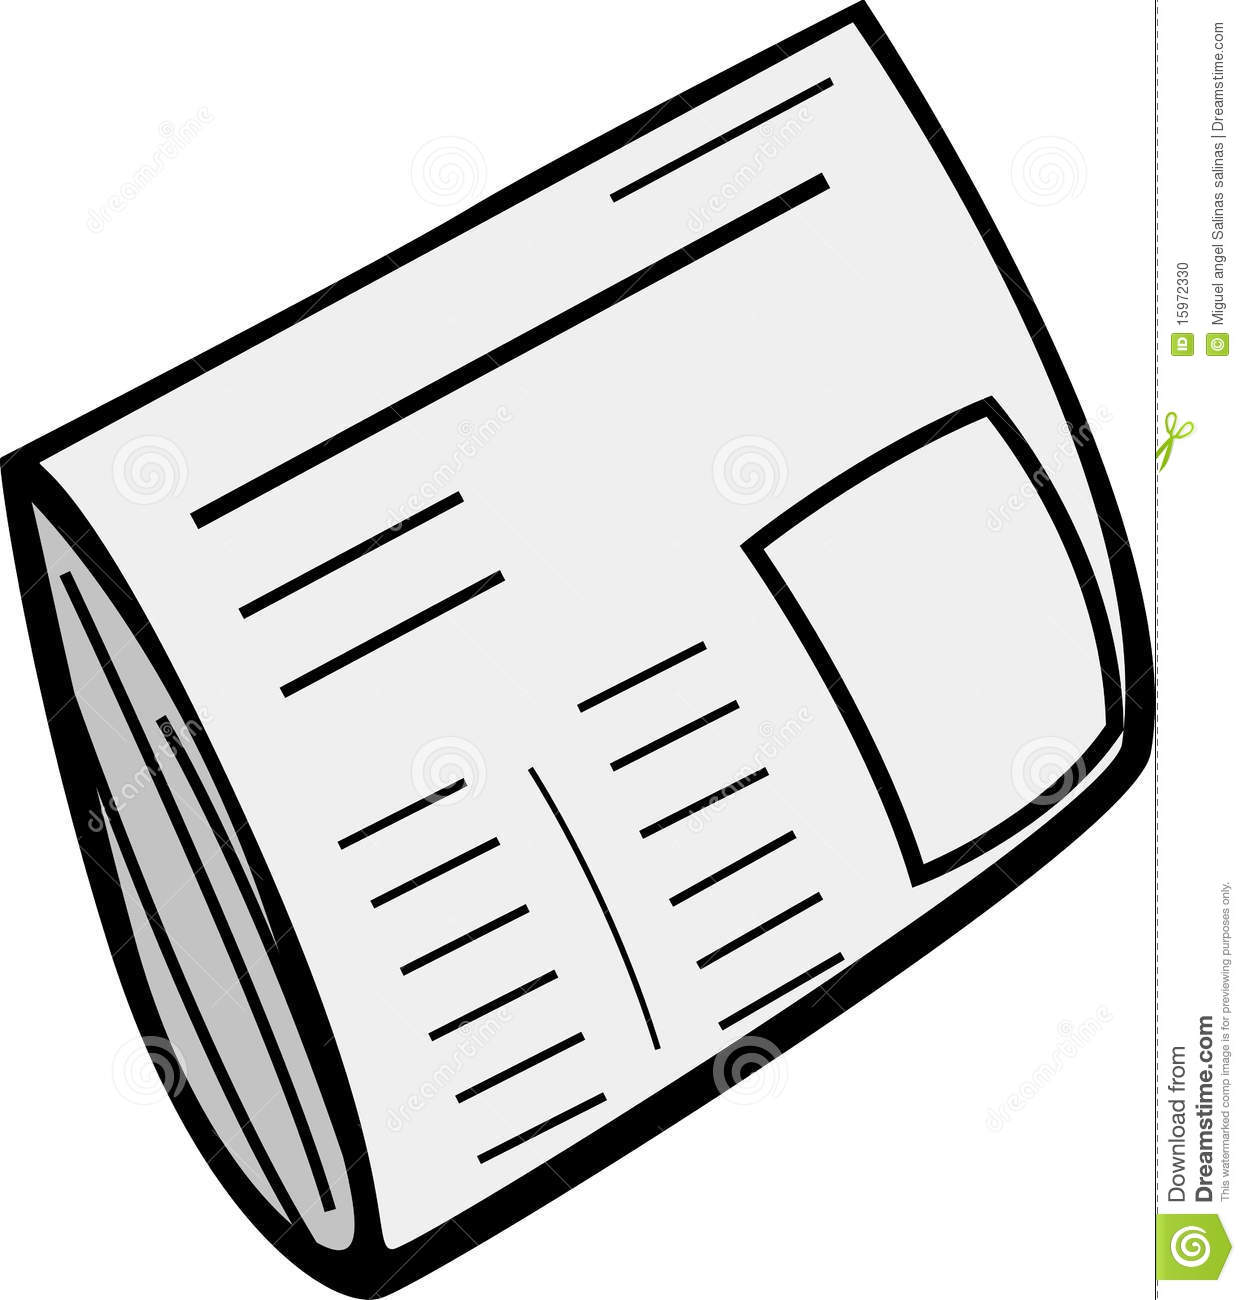 Newspaper Vector Illustration Stock Vector